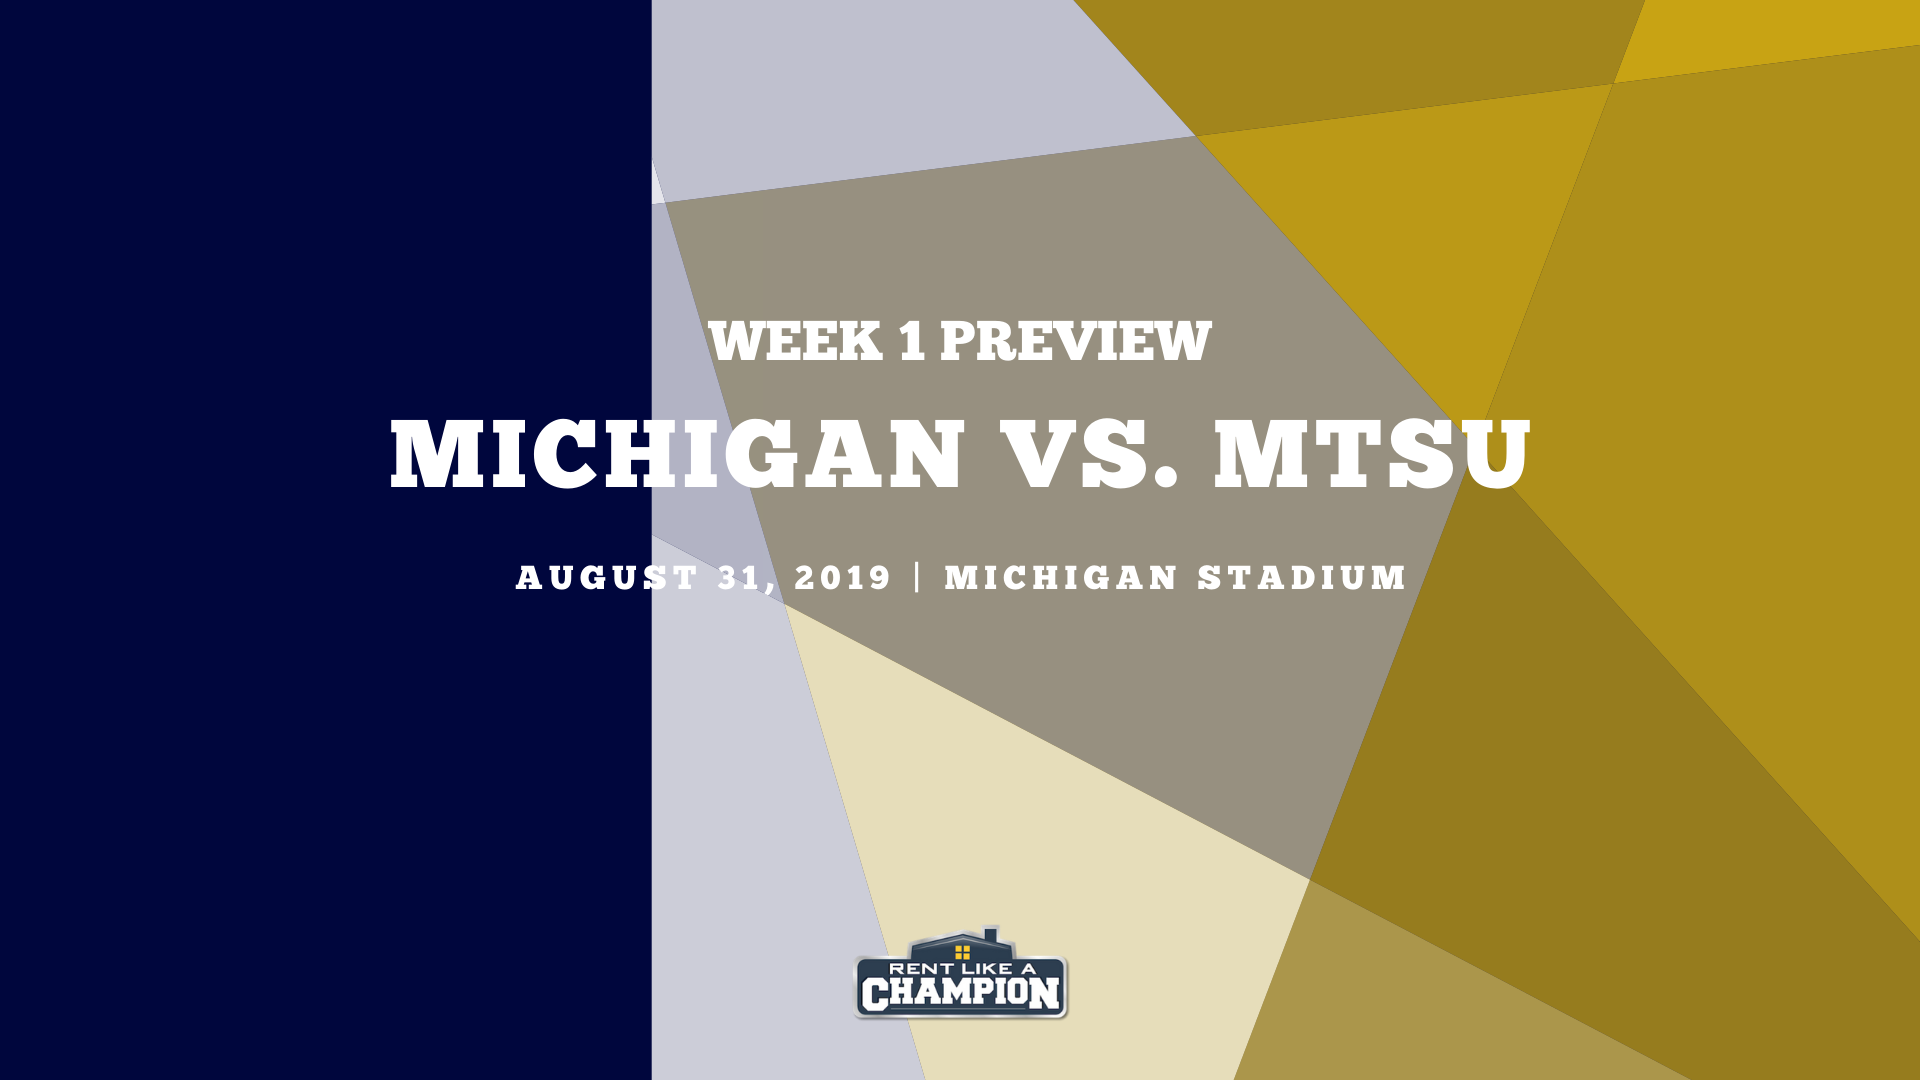 Michigan Game Preview Template